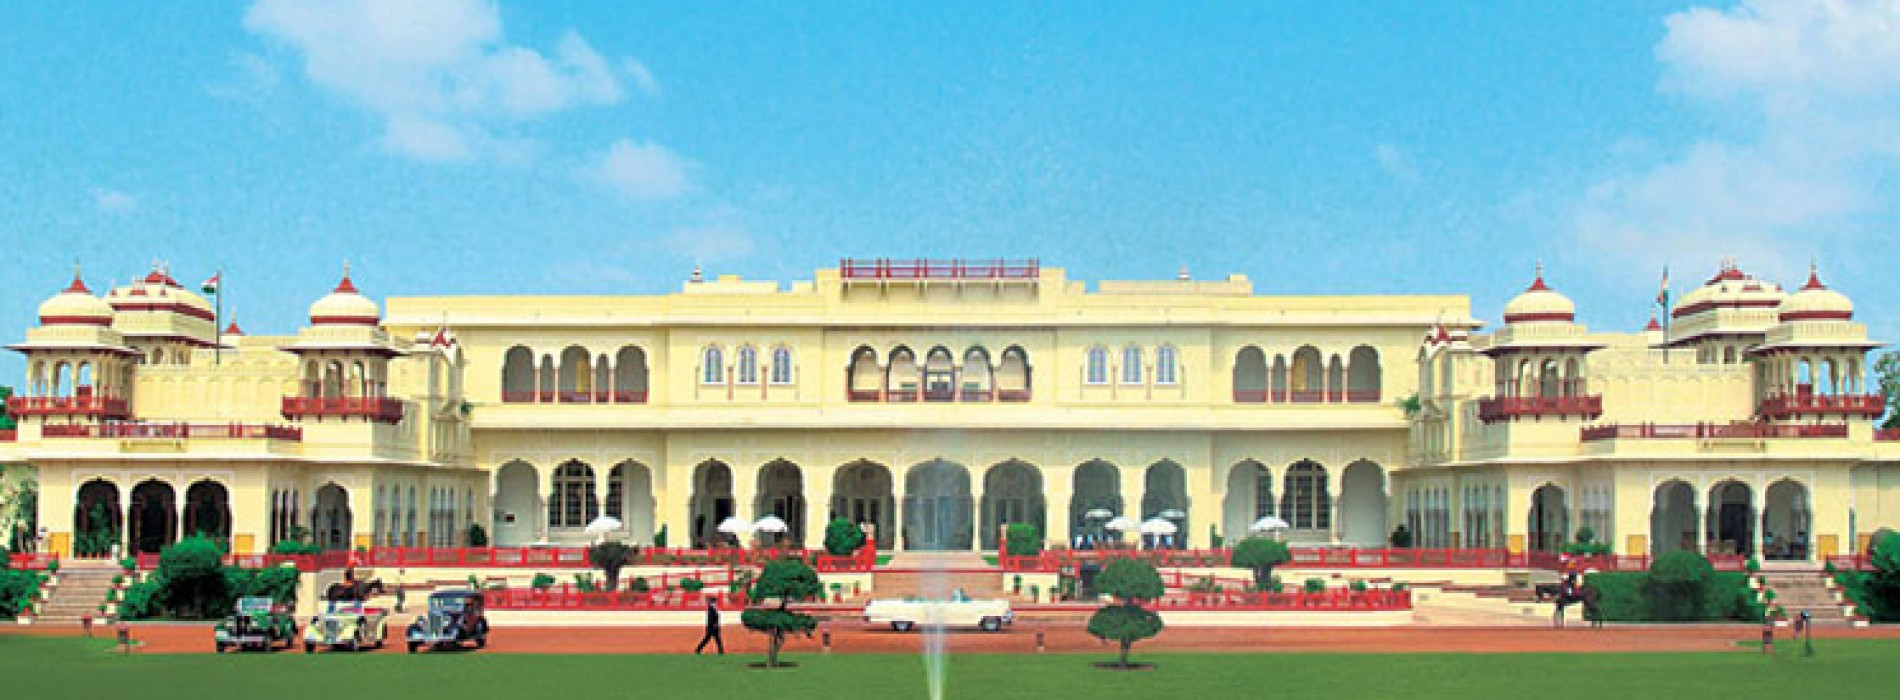 Famous Places for Royal Style Weddings in Rajasthan